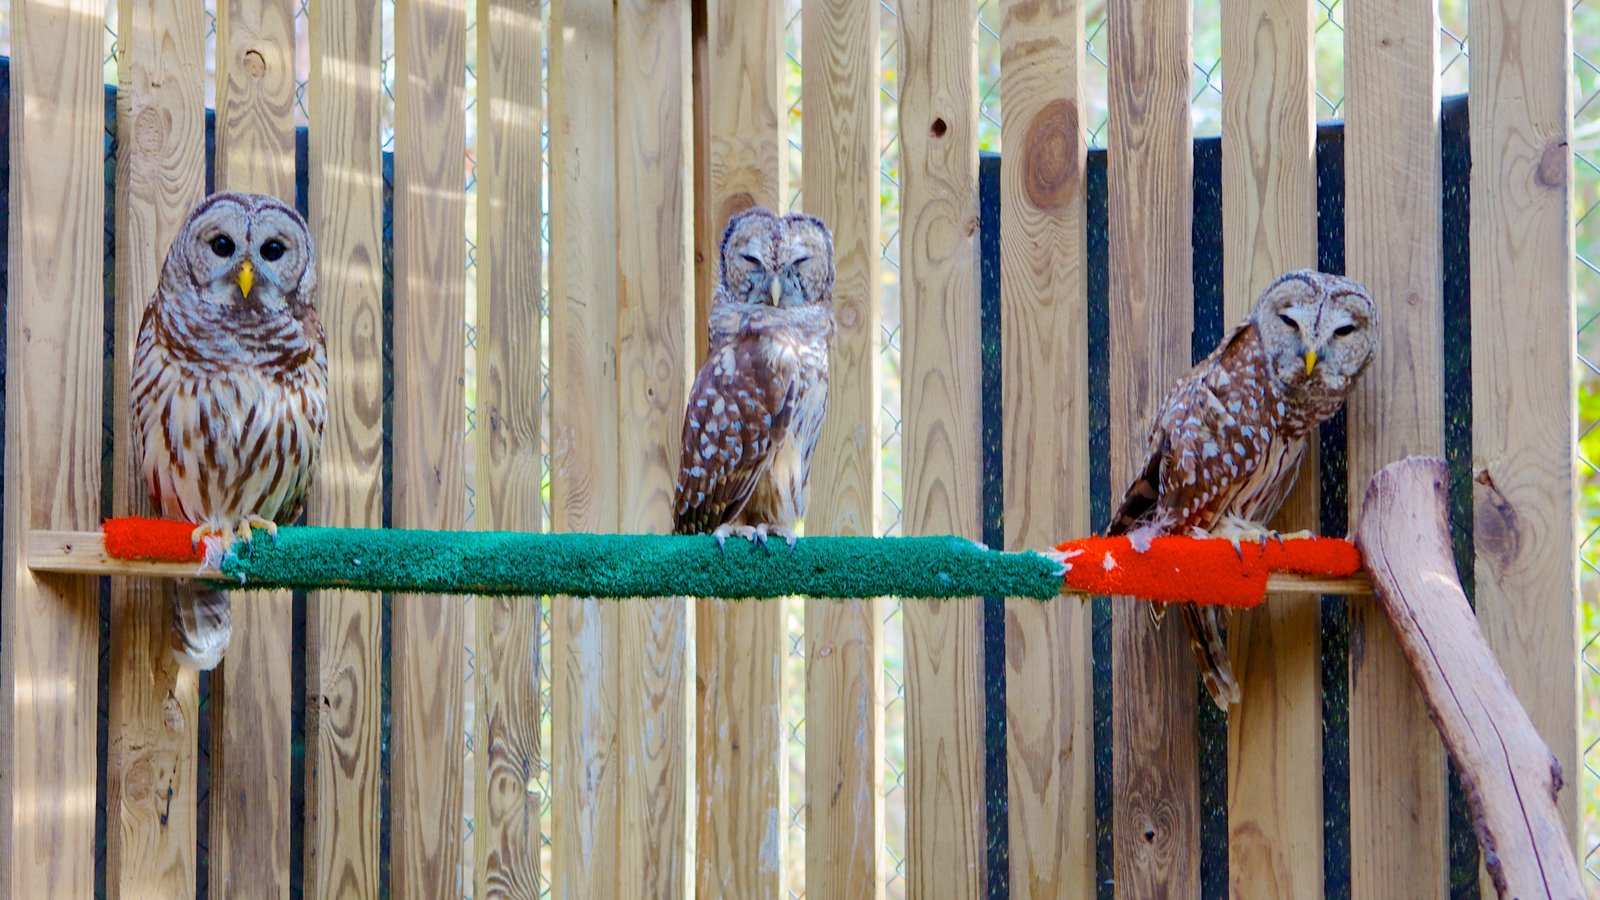 Carolina Raptor Center featuring bird life and zoo animals